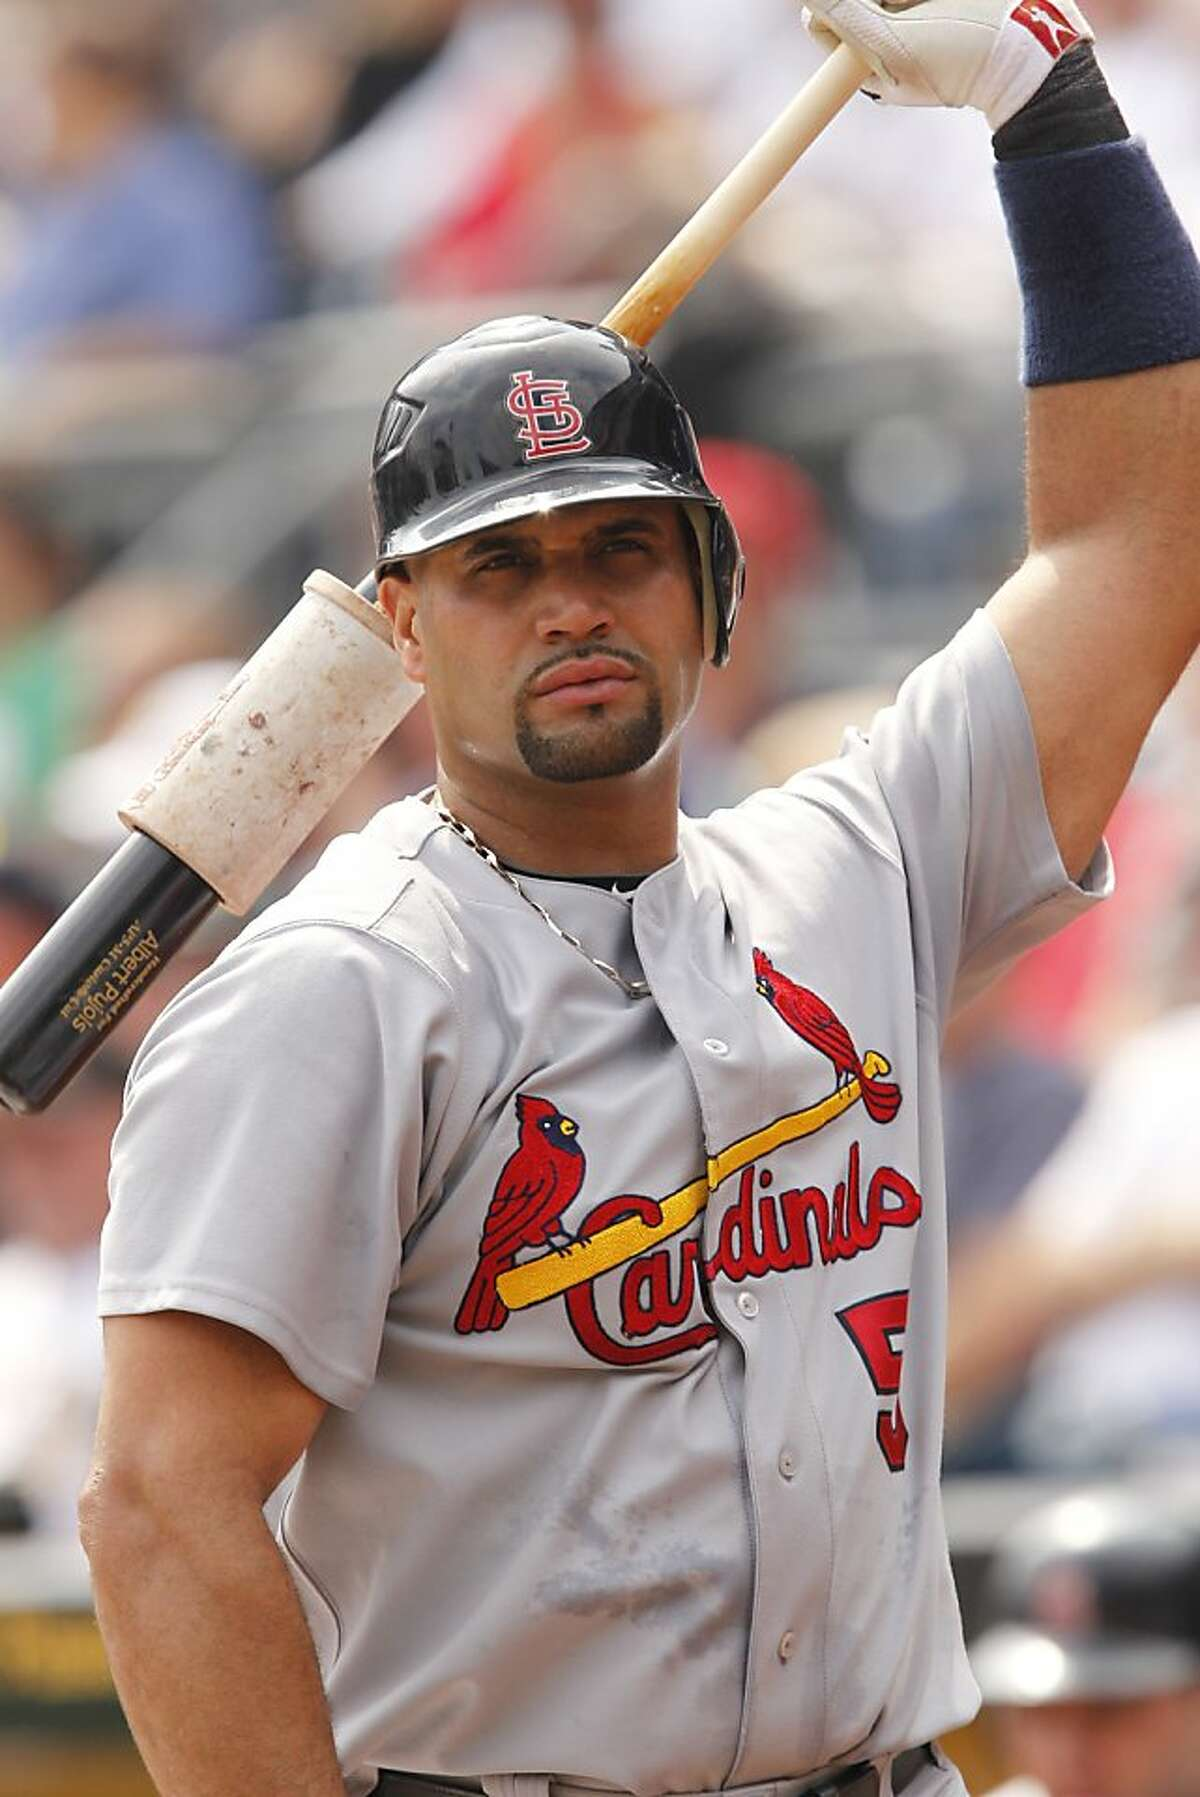 St. Louis Cardinals' Albert Pujols warms up on deck during the third inning of a baseball game against the Pittsburgh Pirates in Pittsburgh Wednesday, Sept. 14, 2011. (AP Photo/Gene J. Puskar)